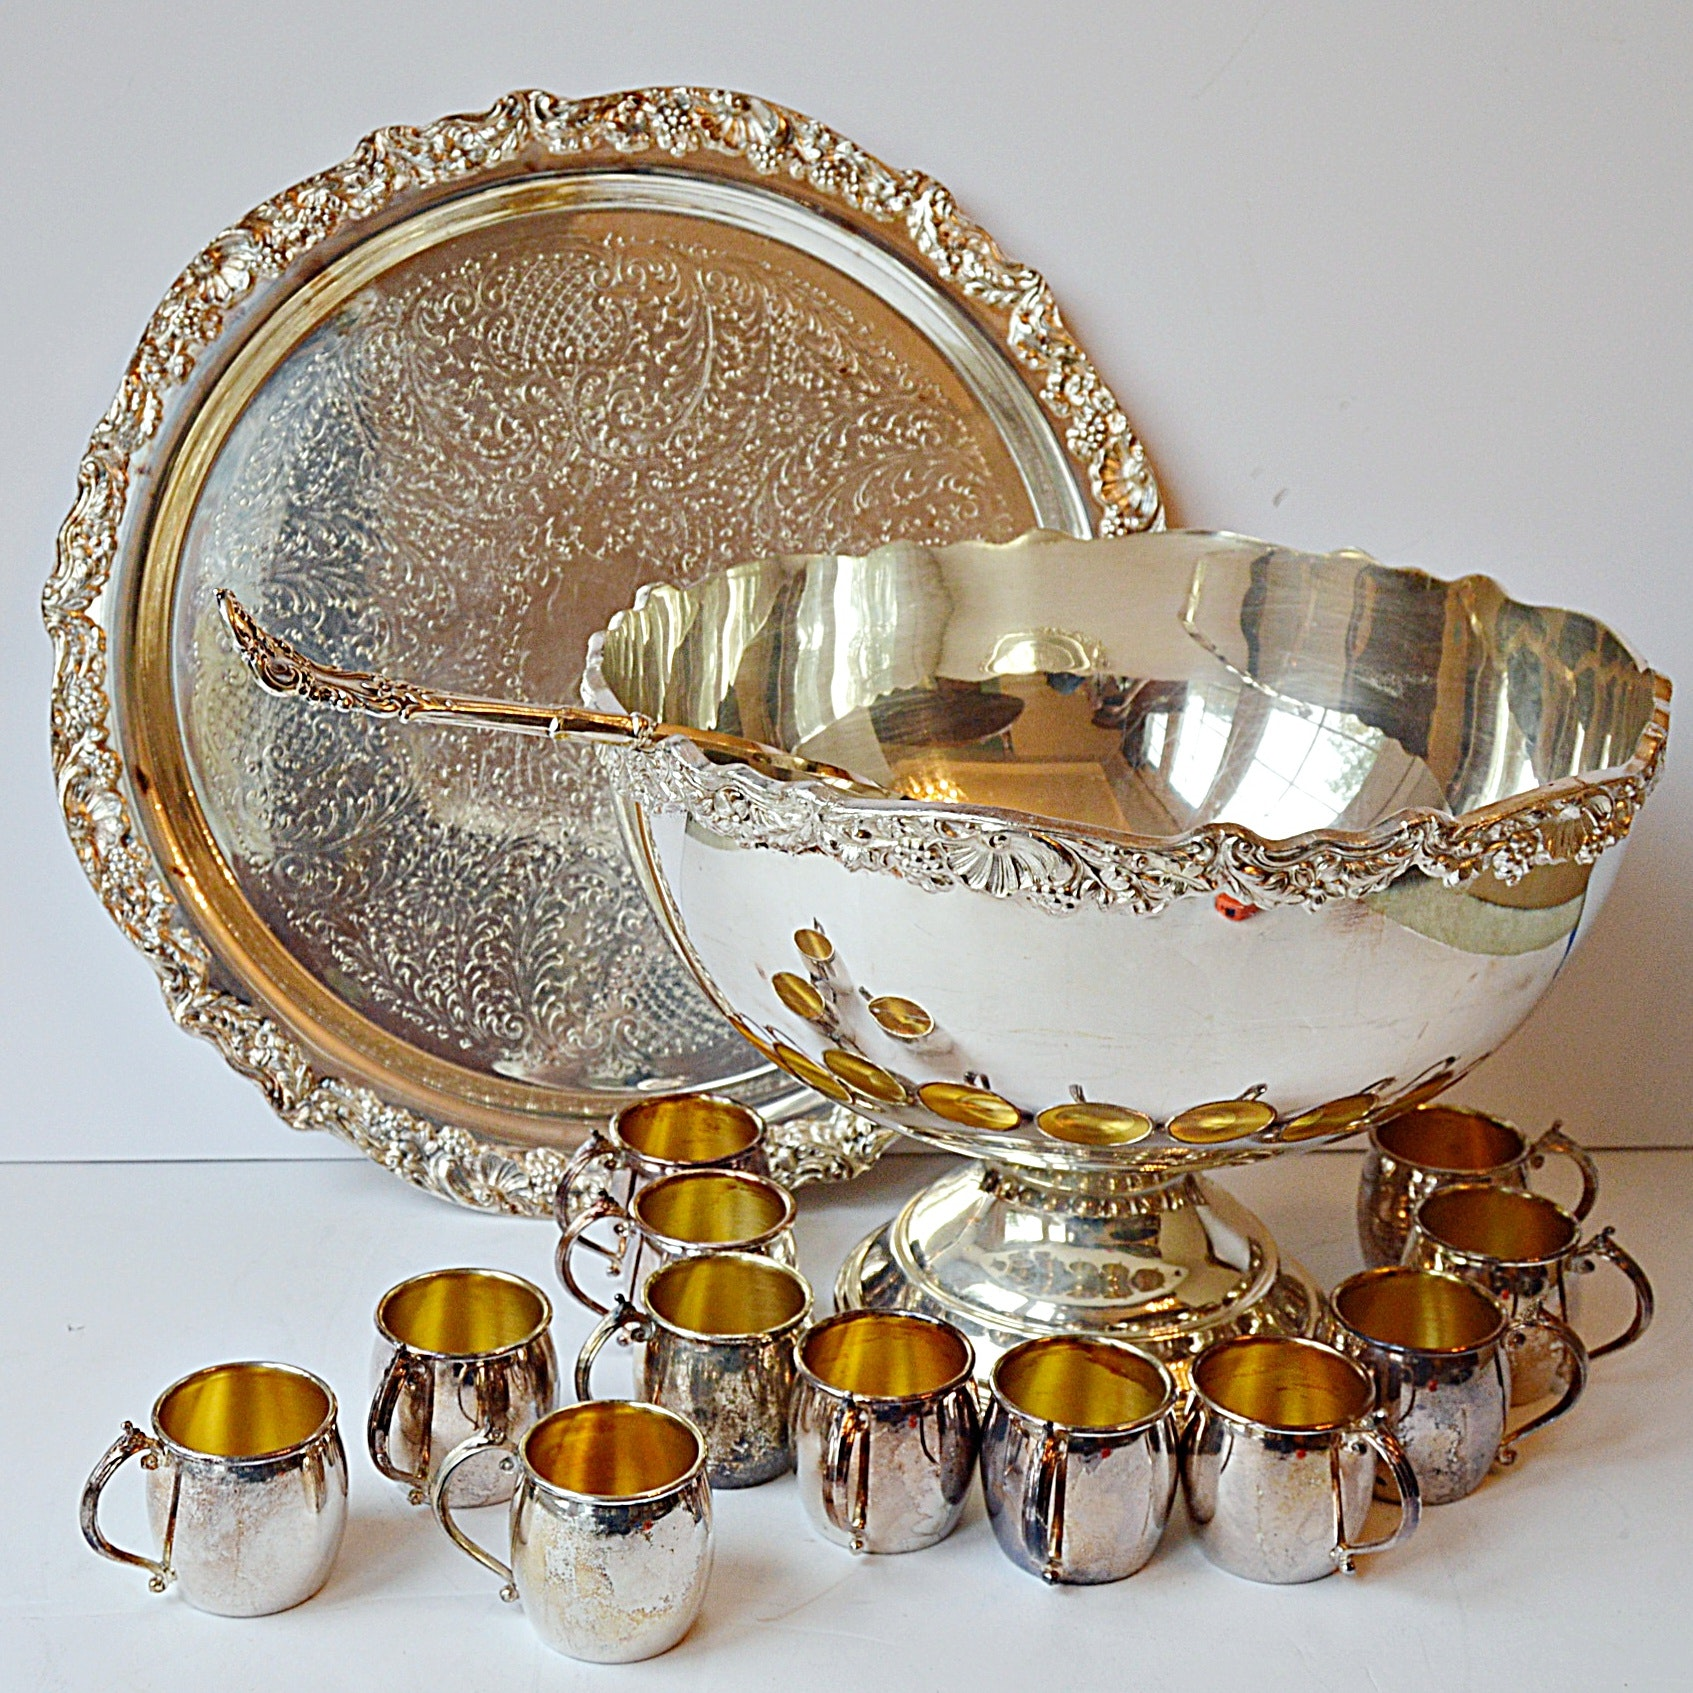 Silver Plate Punch Bowl Set ... & Silver Plate Punch Bowl Set : EBTH